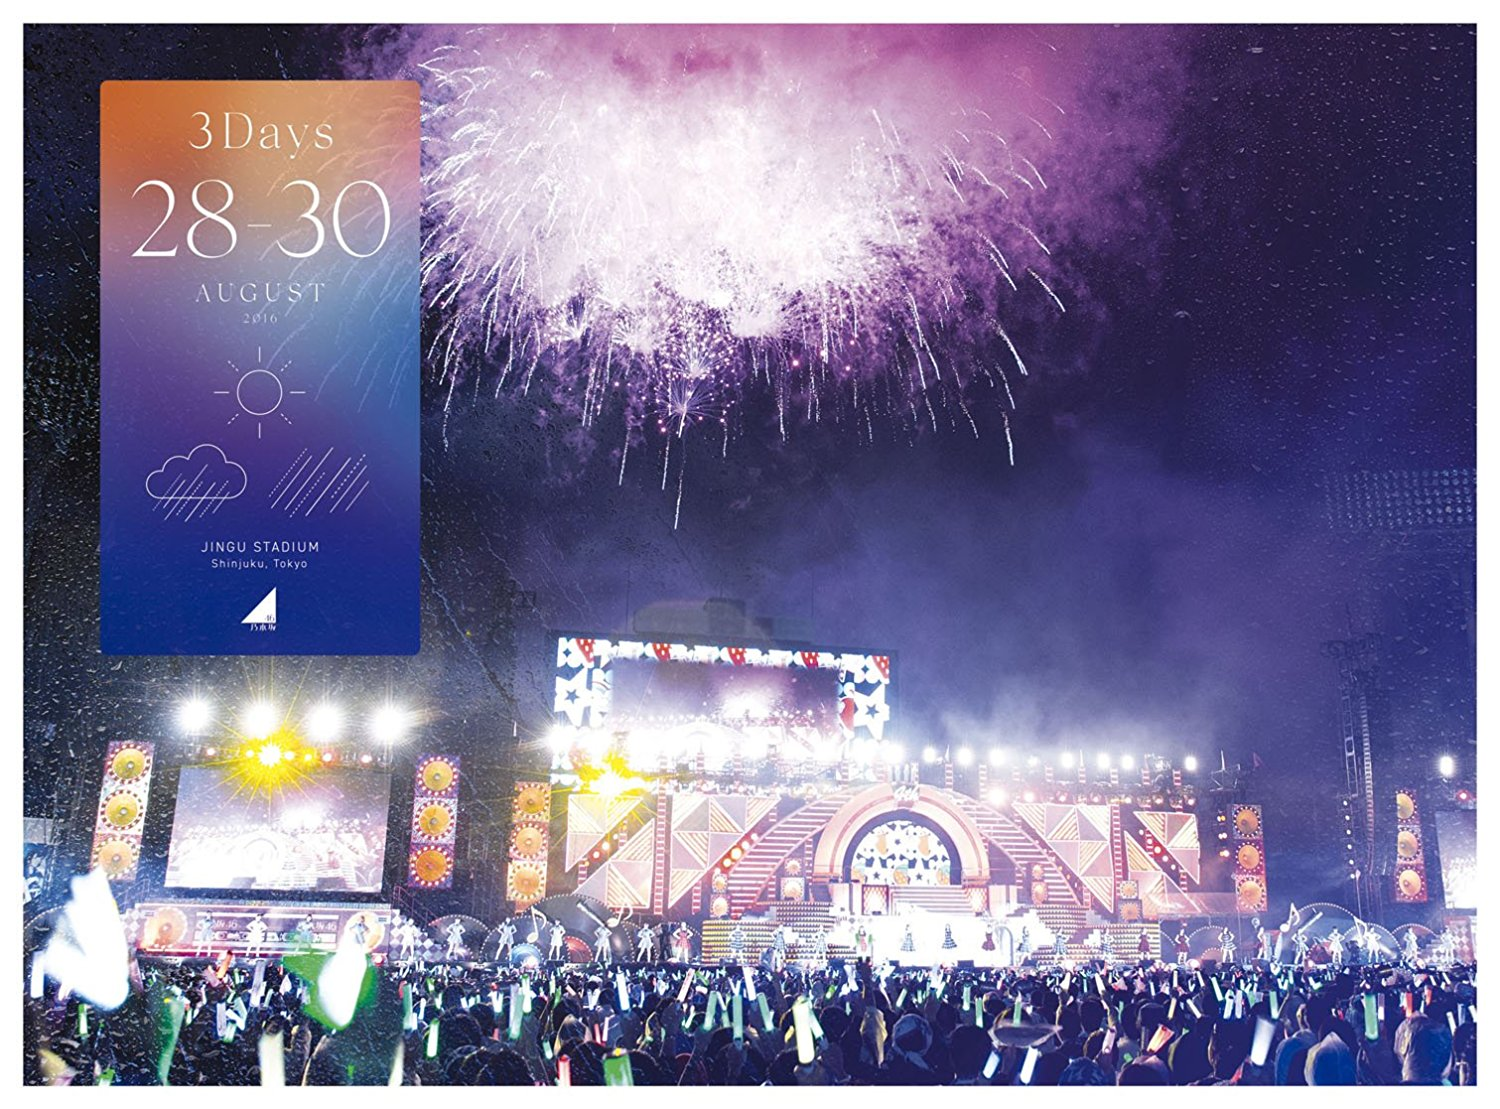 新品 乃木坂46 4th YEAR BIRTHDAY LIVE 2016.8.28-30 JINGU STADIUM 完全生産限定盤 Blu-ray